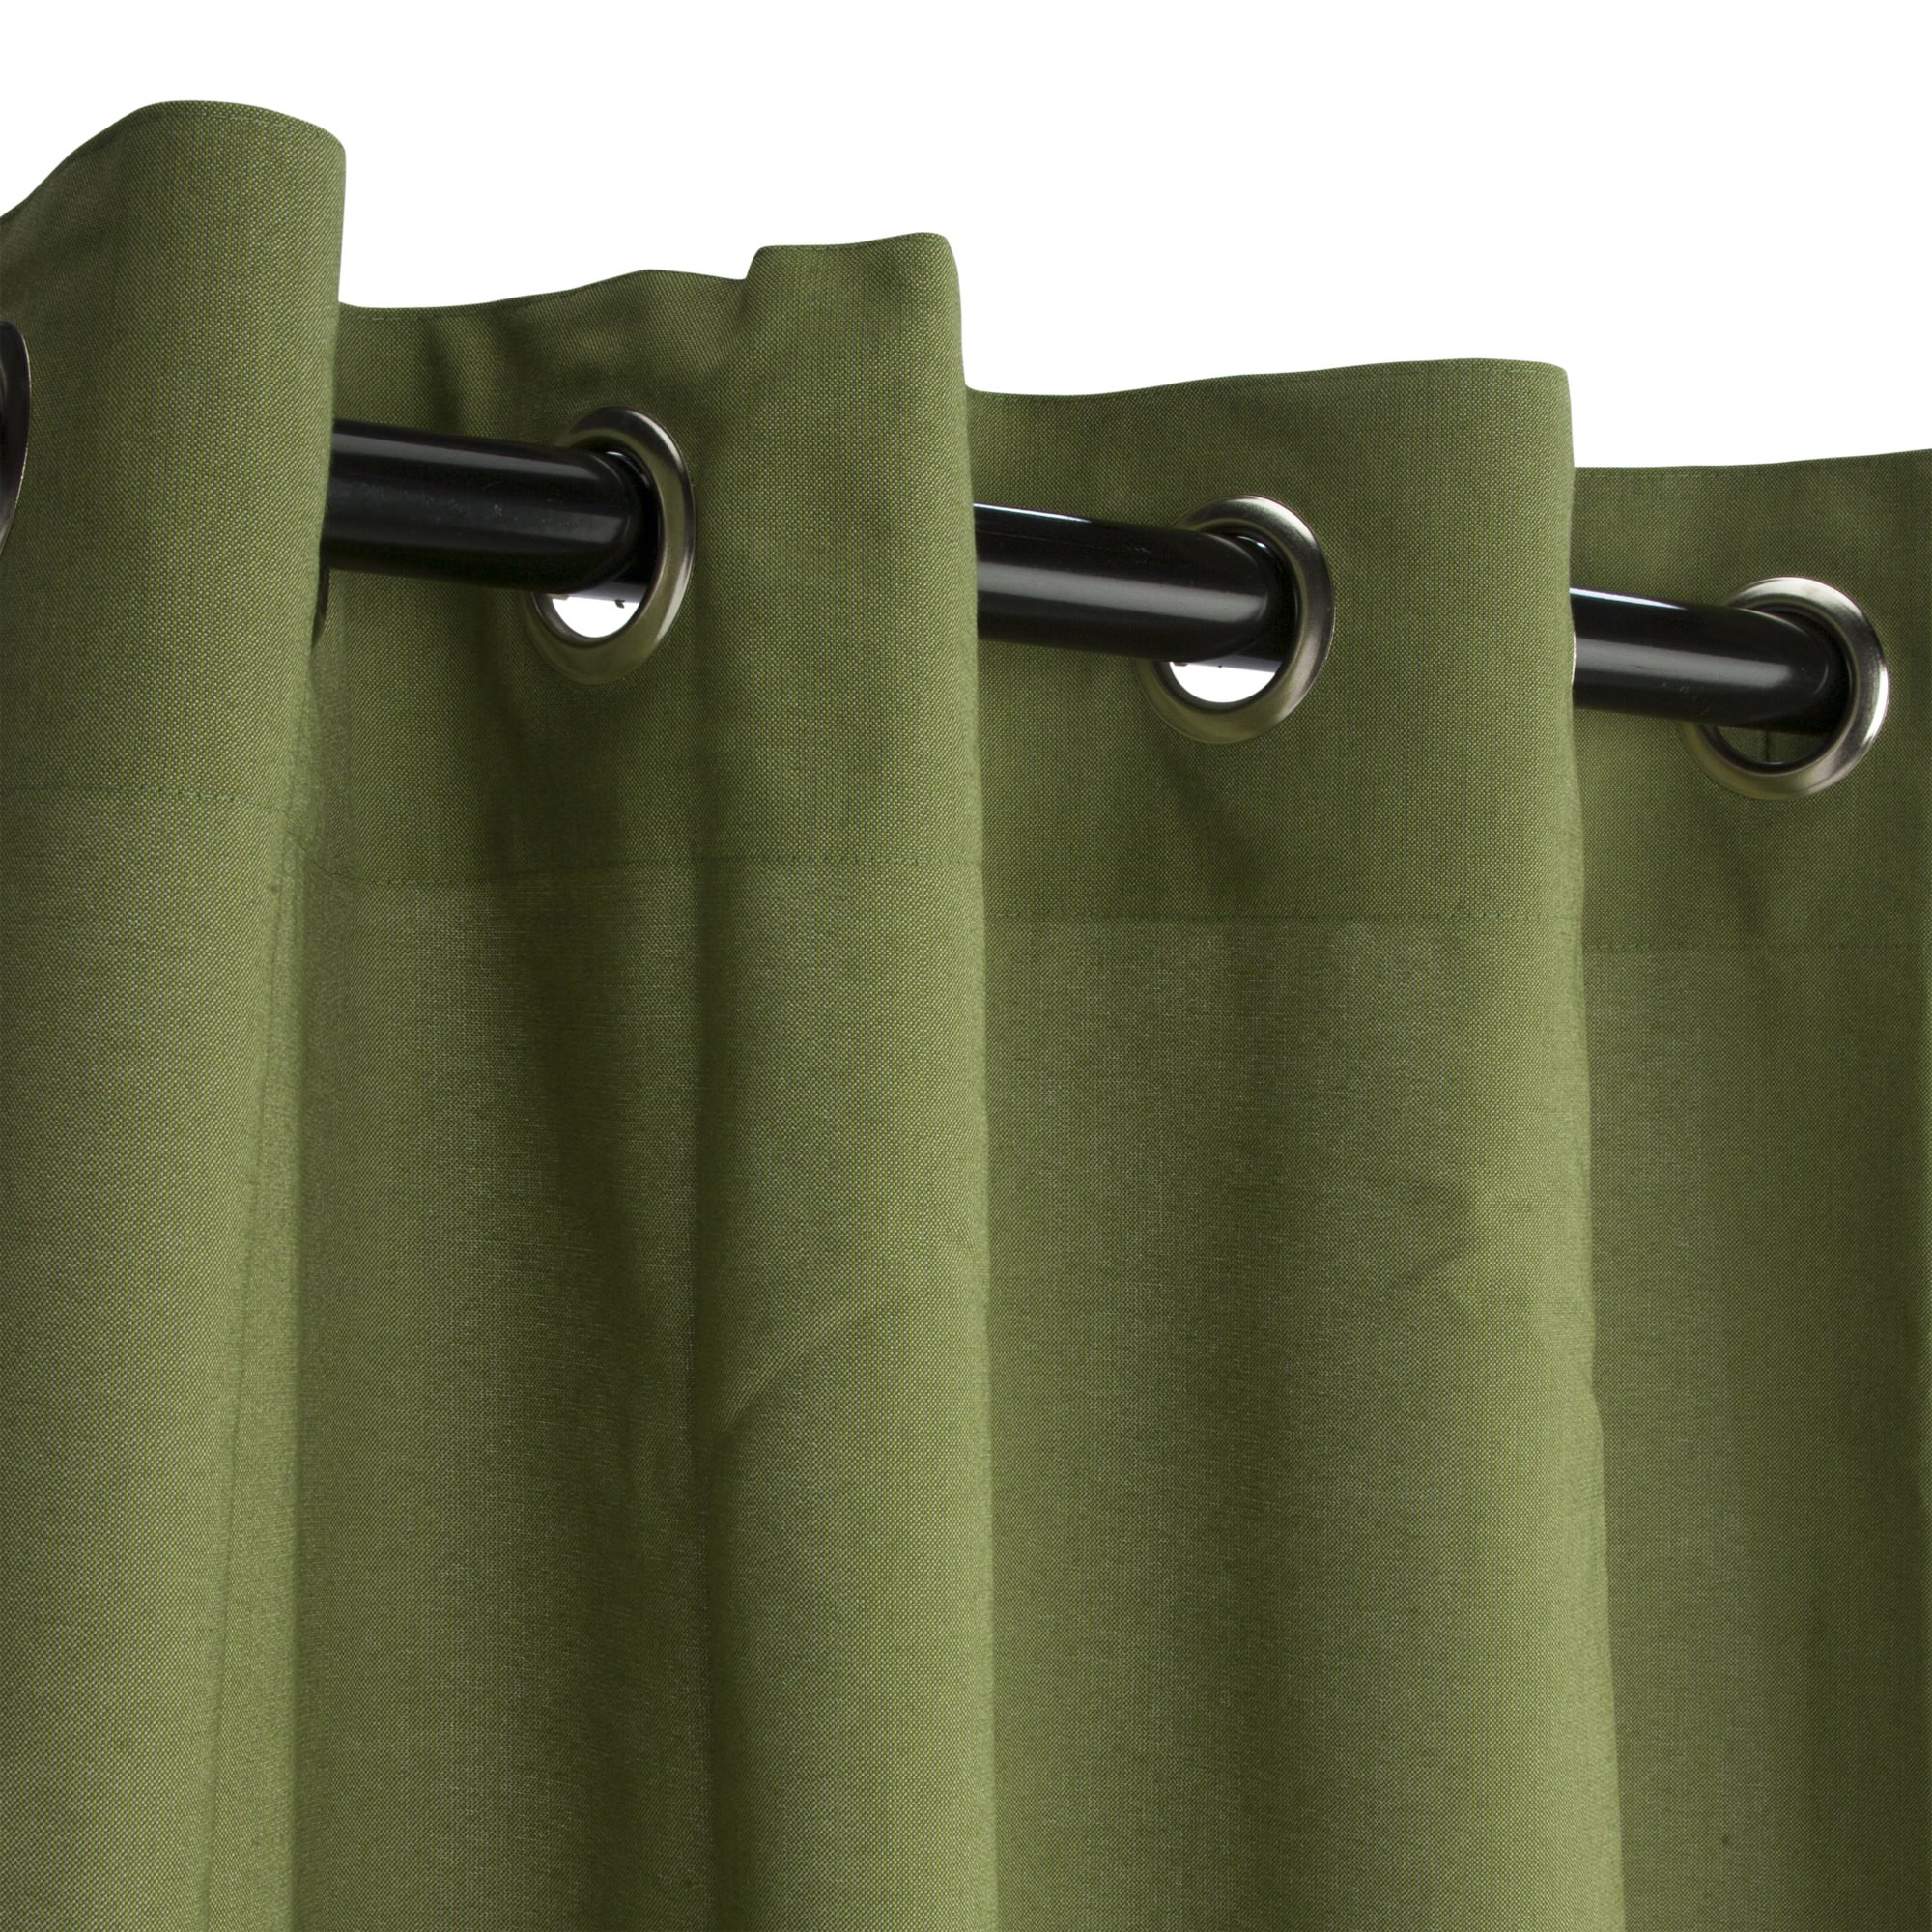 Sunbrella Spectrum Cilantro Outdoor Curtain with Nickel Plated Grommets